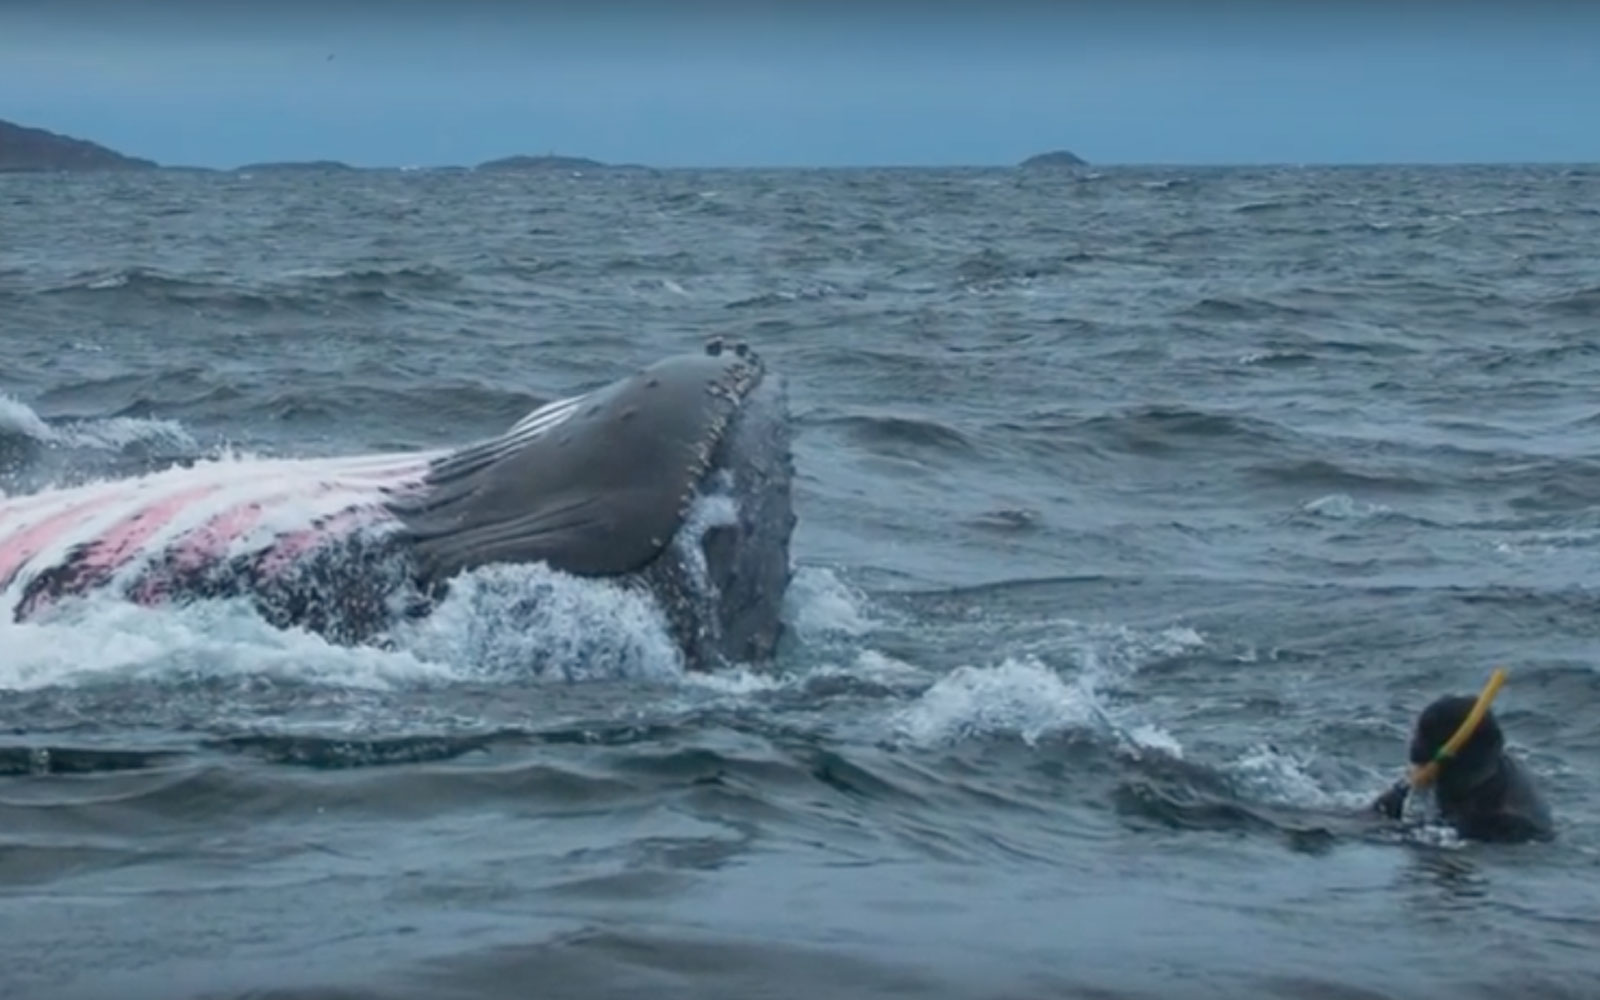 Diver Nearly Engulfed by 35,000-pound Humpback Whale